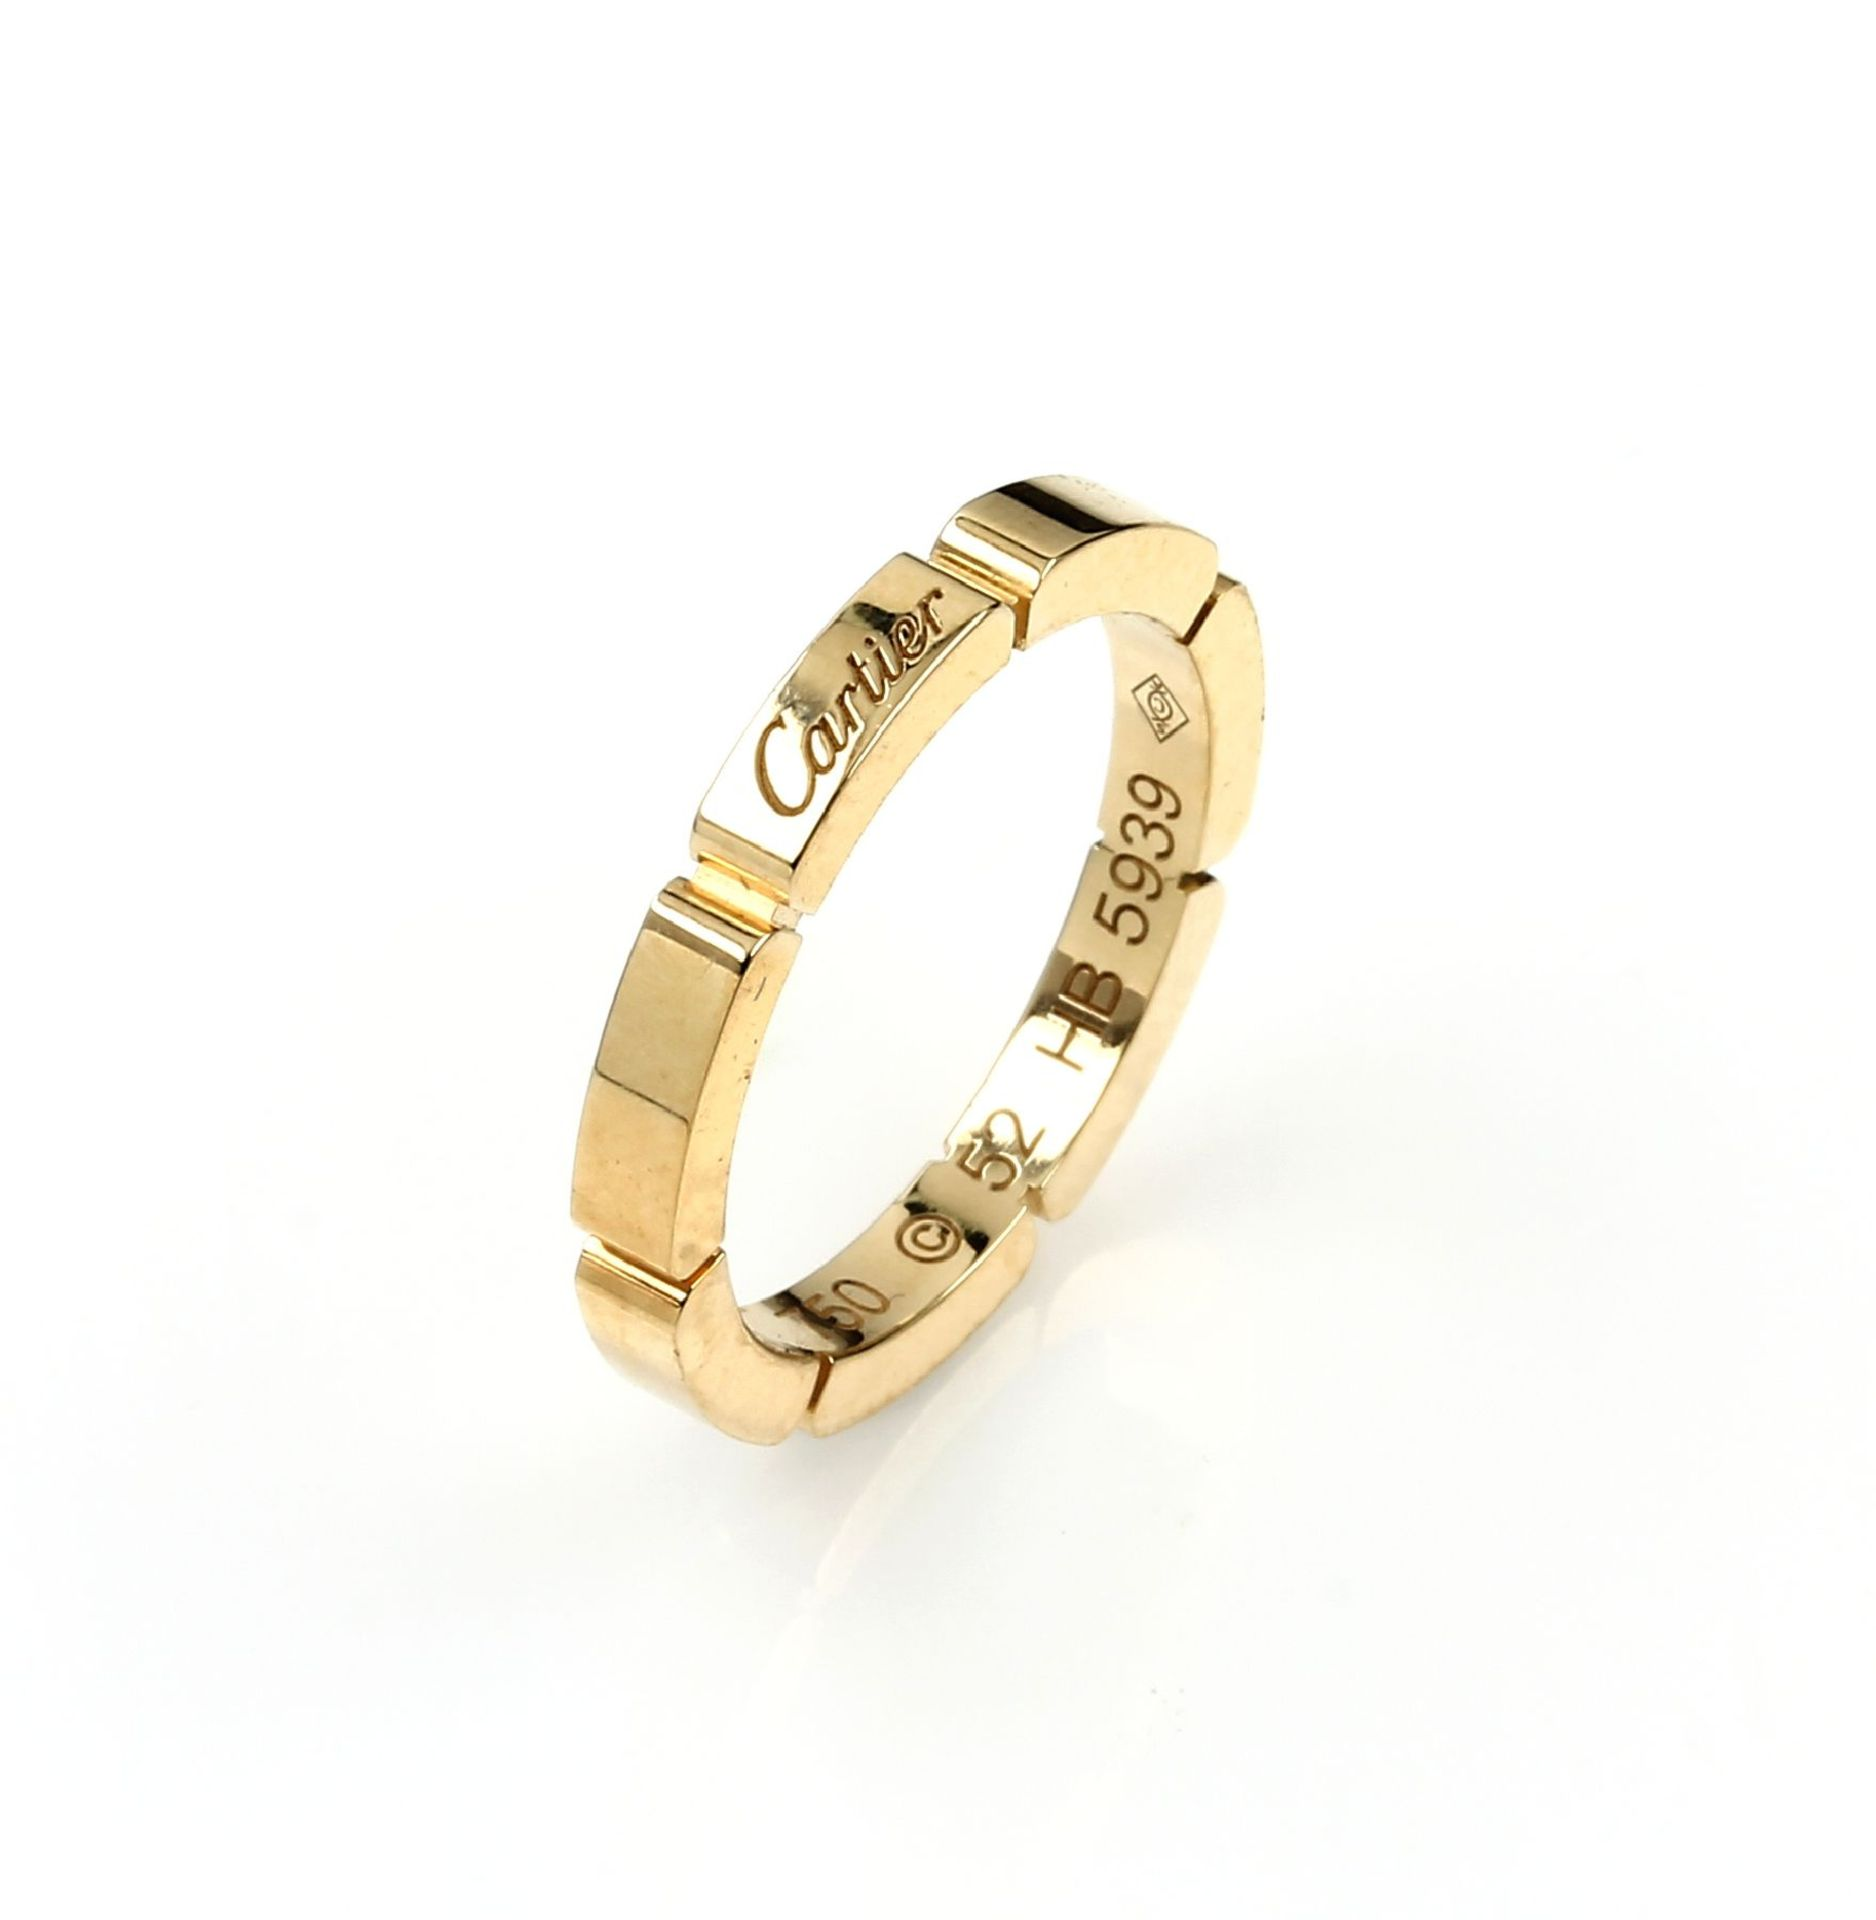 """Los 61560 - 18 kt gold CARTIER wedding ring """"Maillon Panthere"""" , YG 750/000, signed and num., ringsize 5218 kt"""